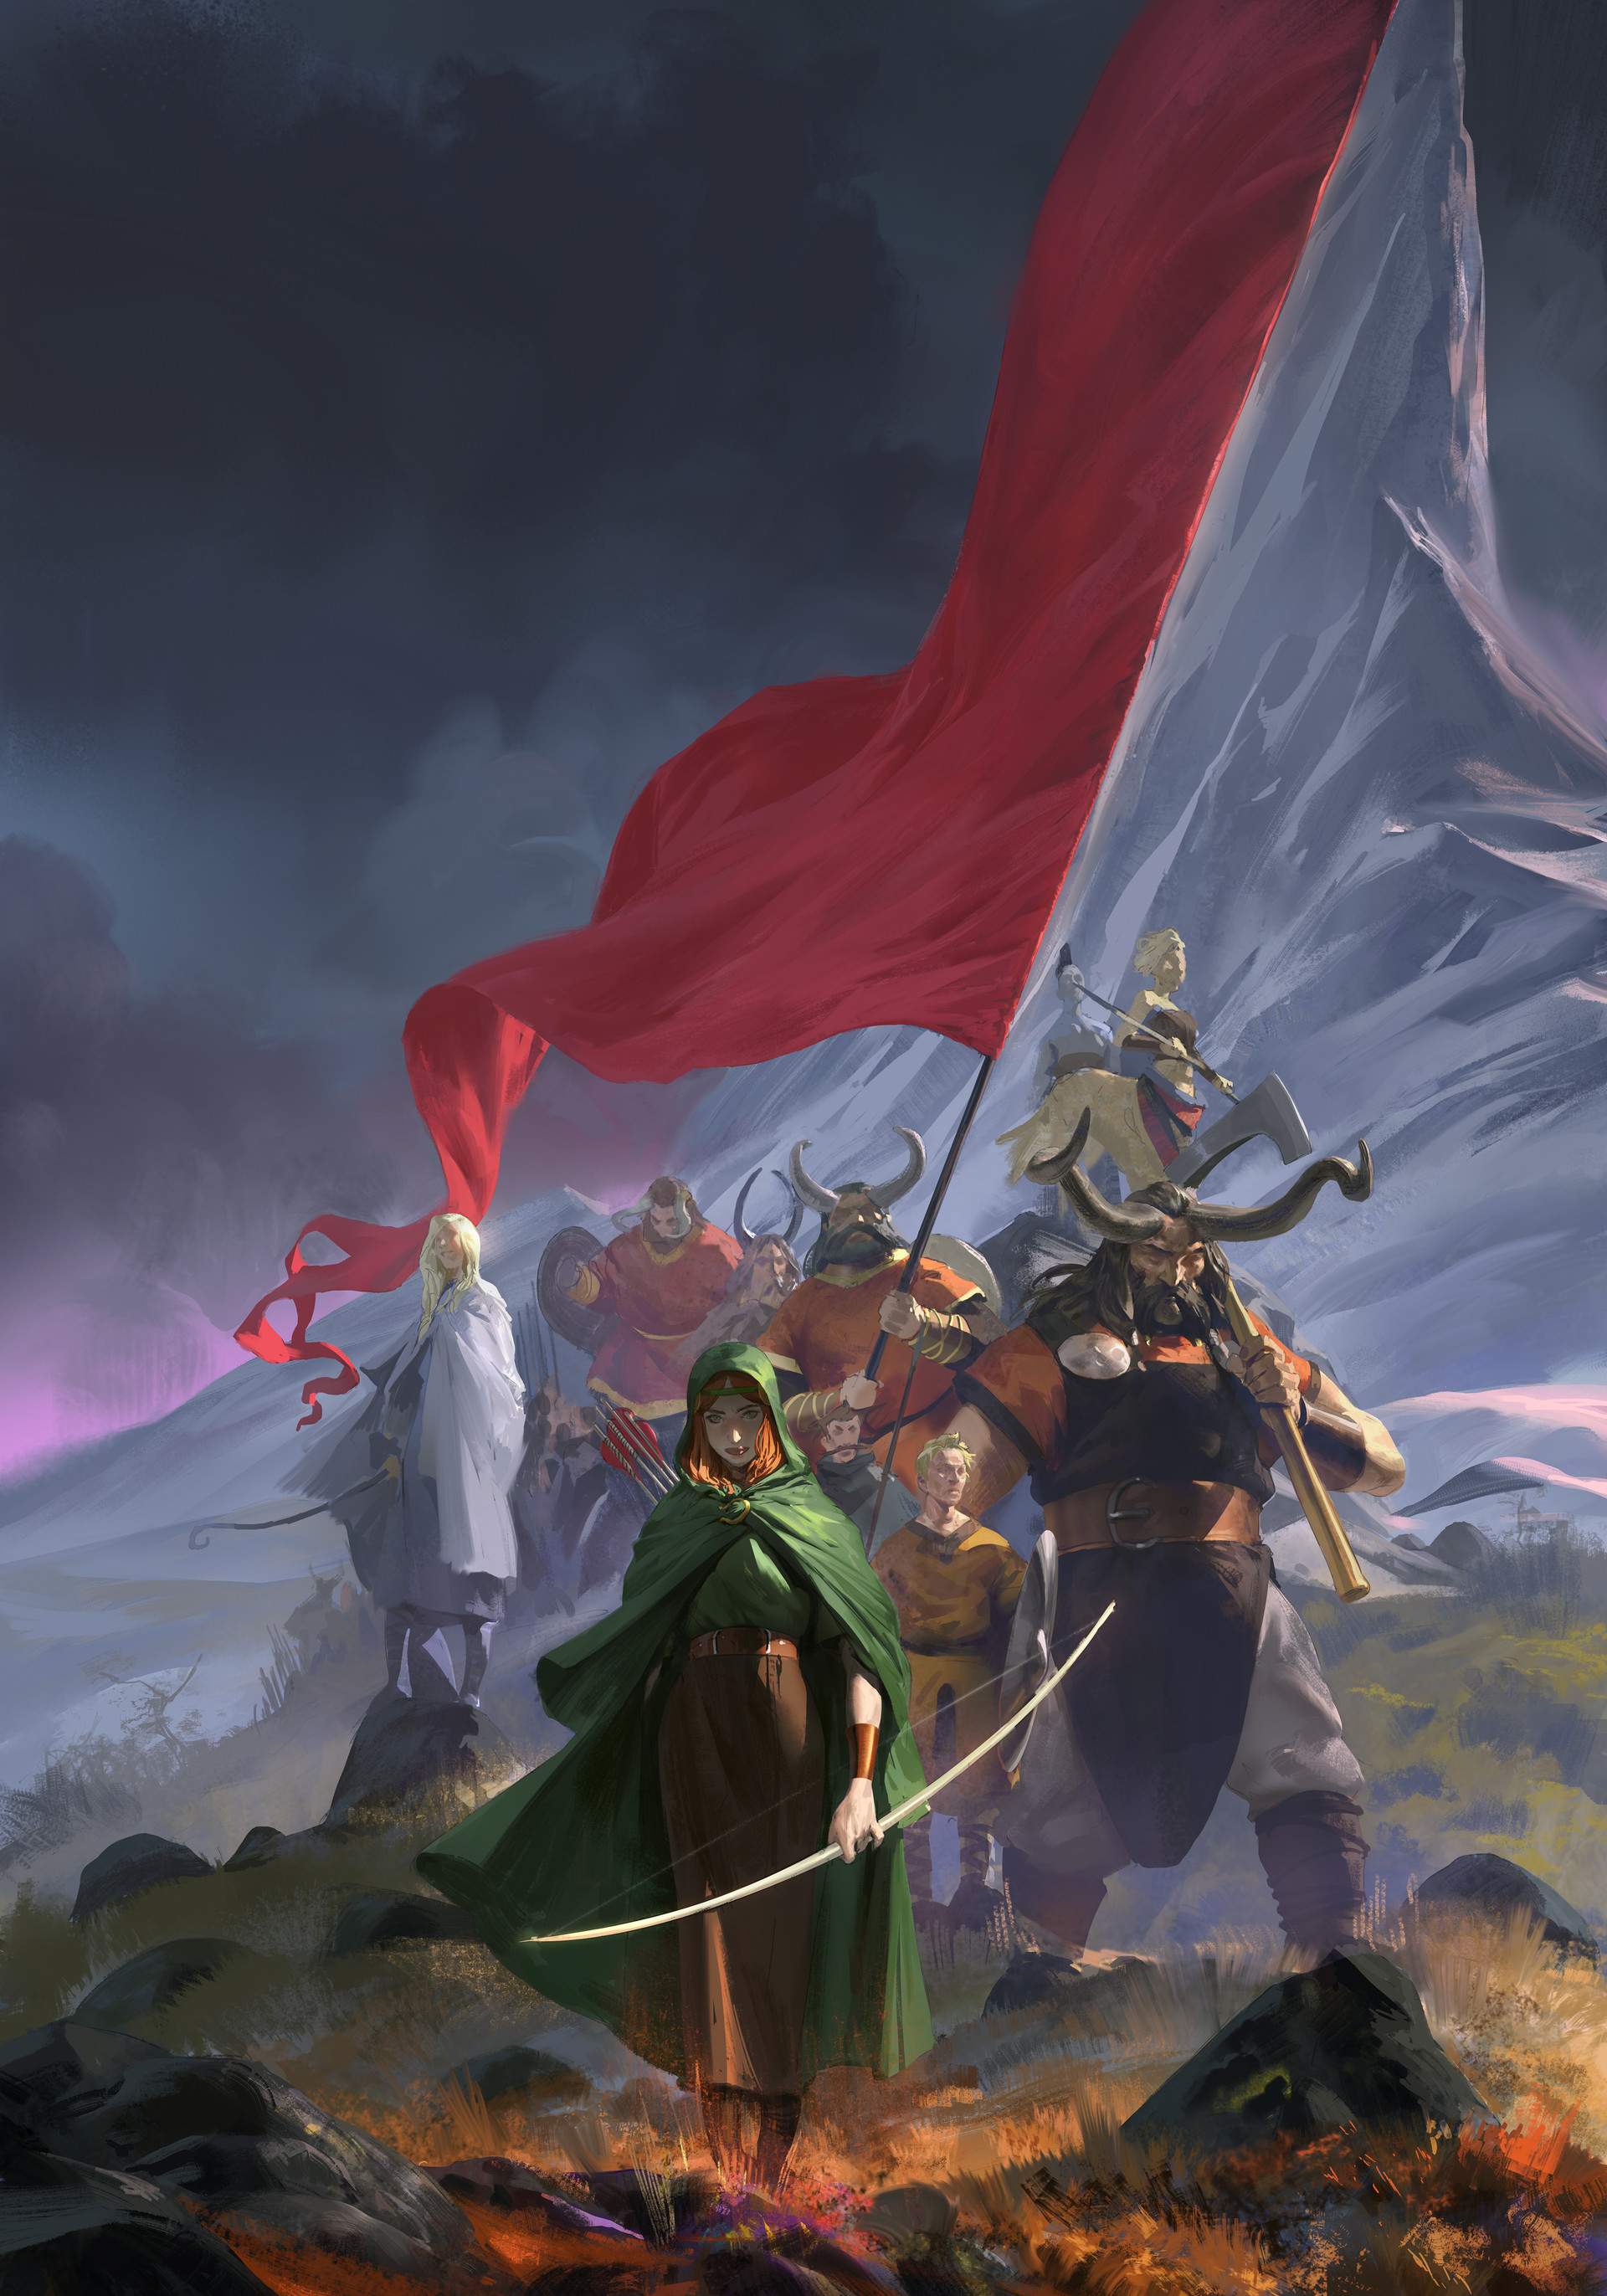 Even amundsen banner saga small